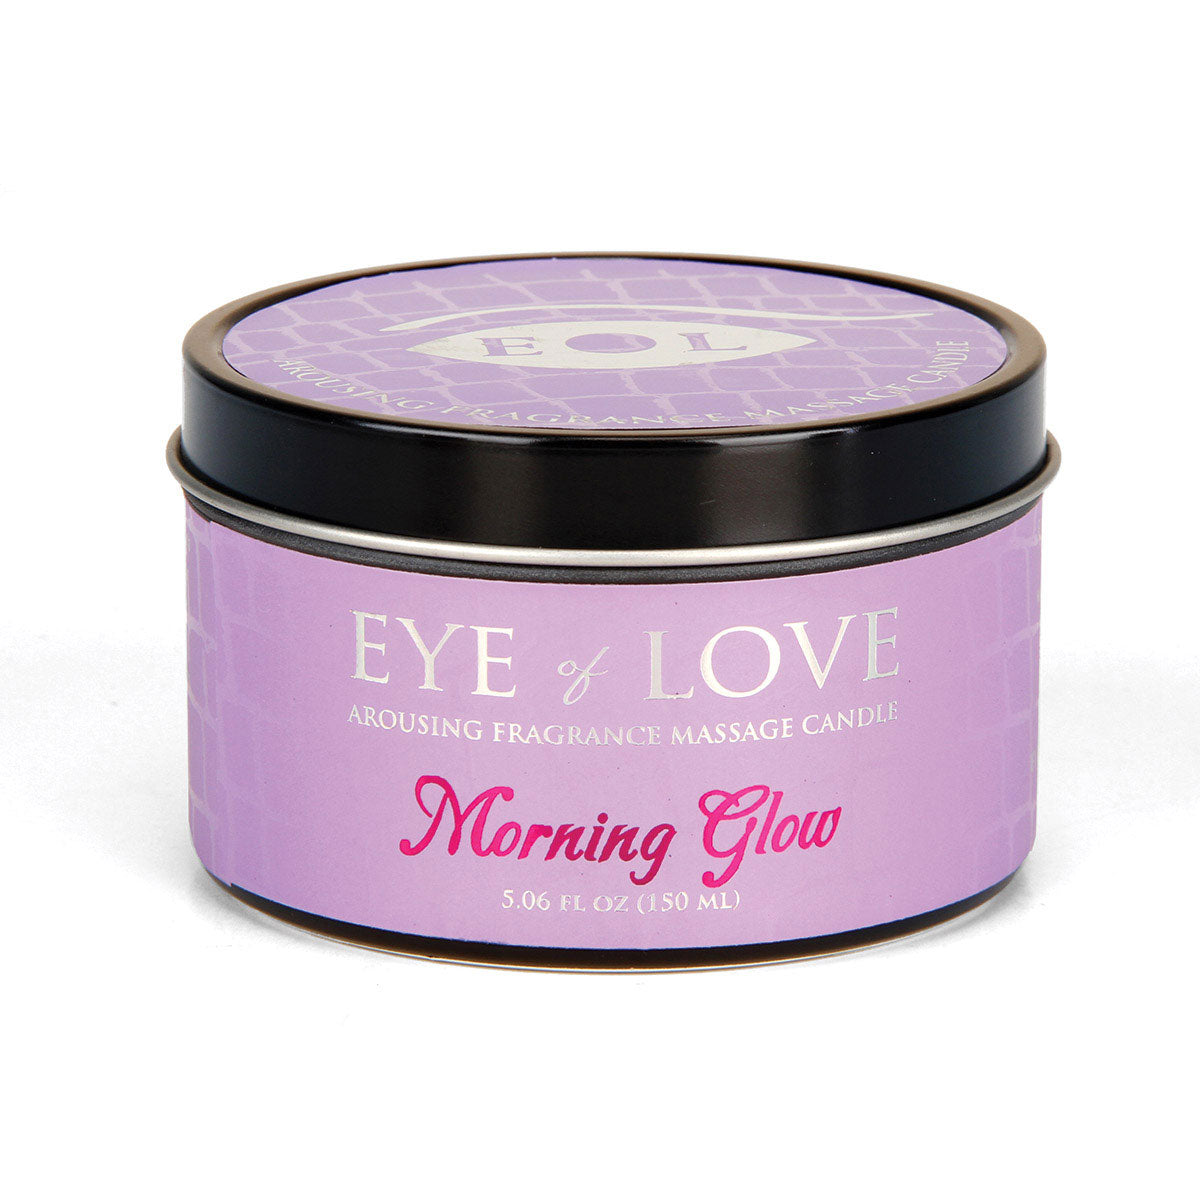 Eye of Love Pheromone Massage Candle 5oz [A02858]